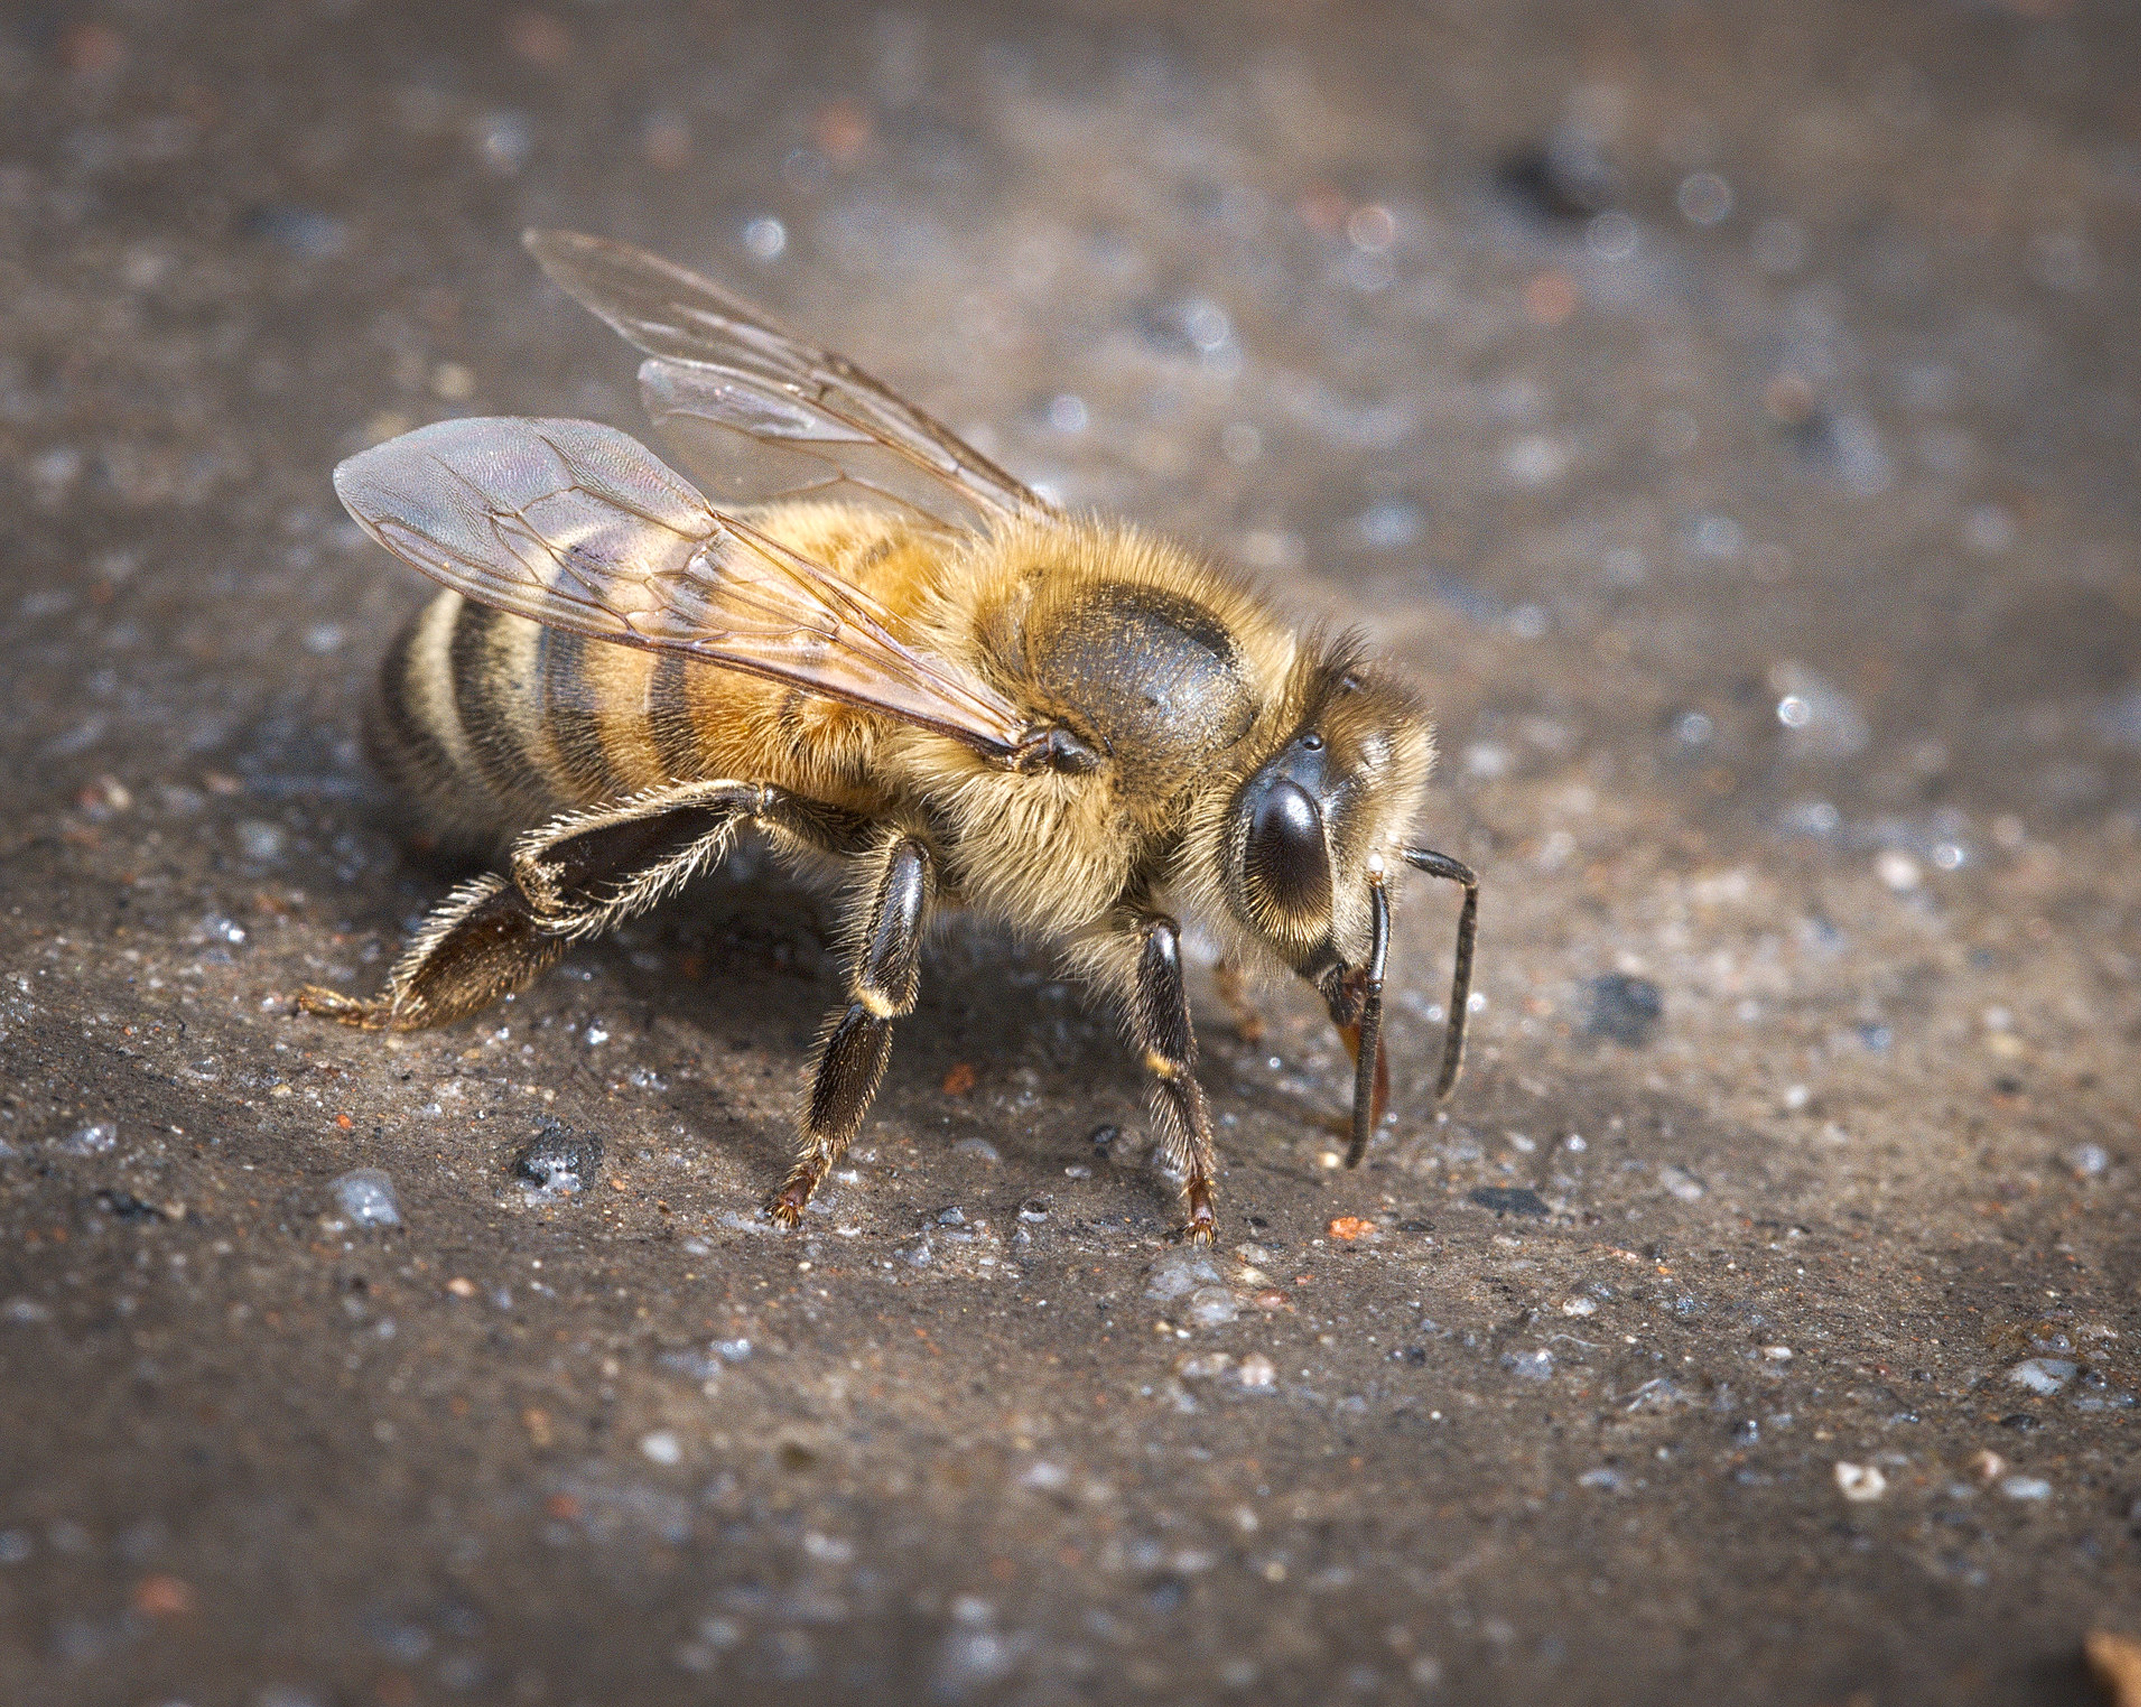 Shallow water dishes with sand or pebbles attract thirsty bees